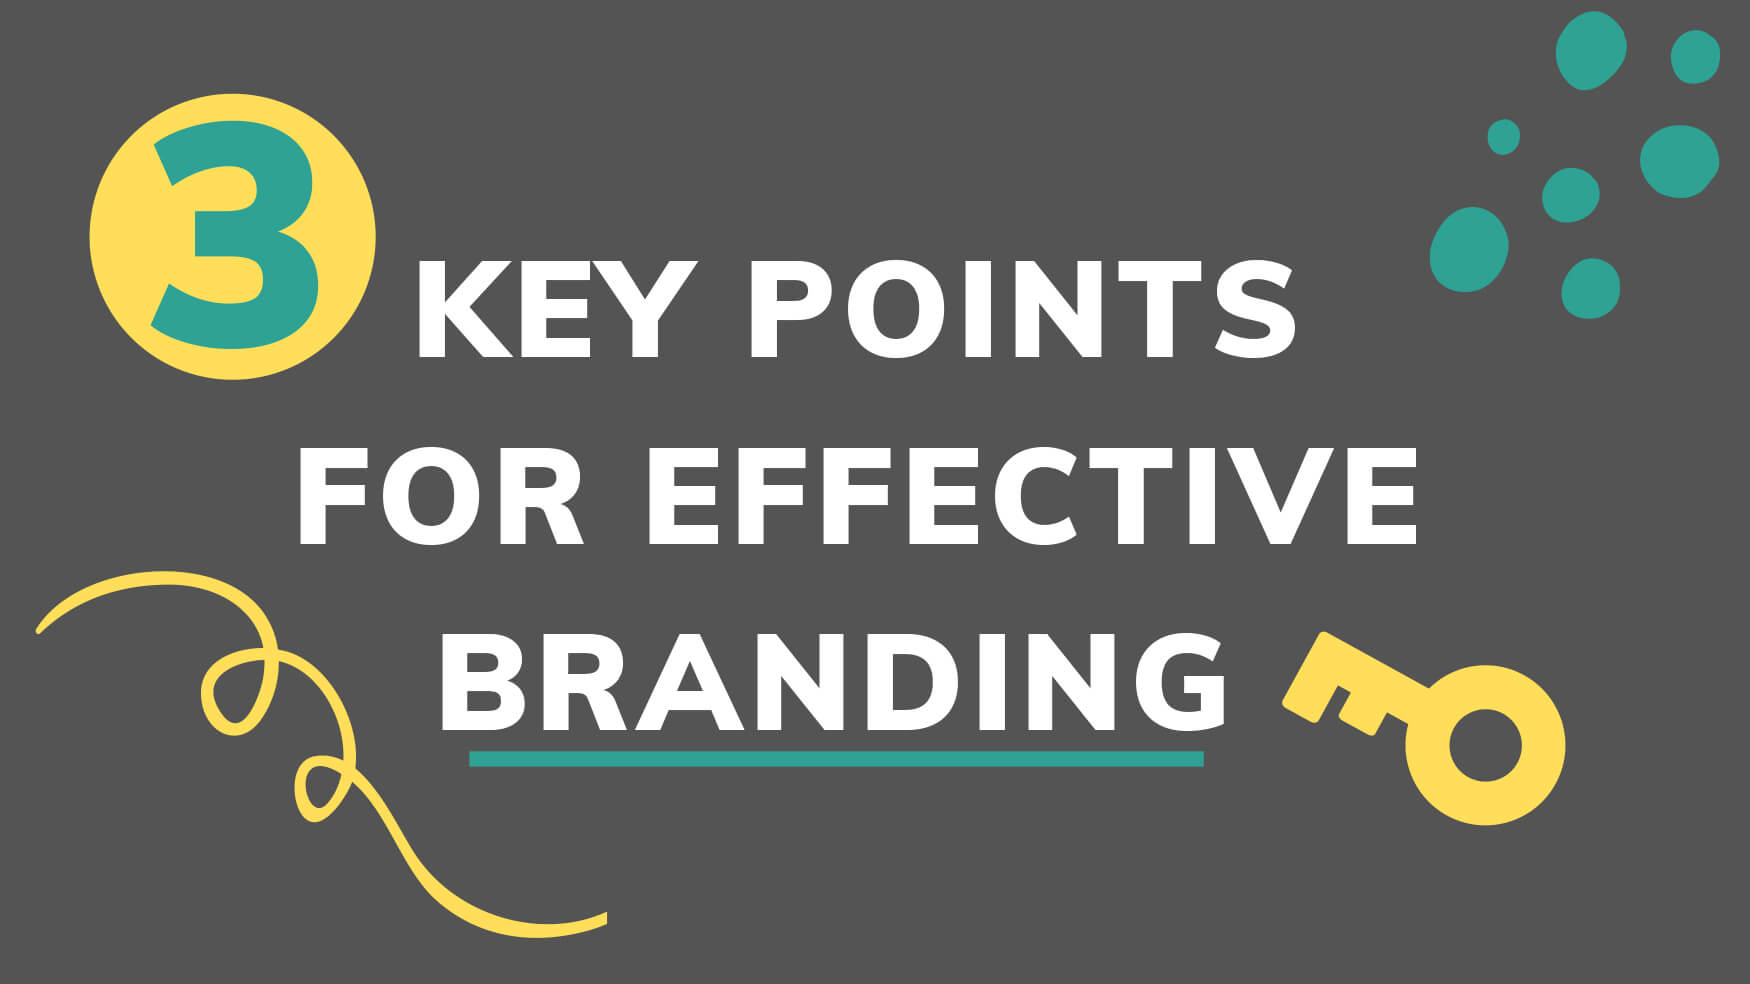 The 3 Key Points for Effective Branding for your Business